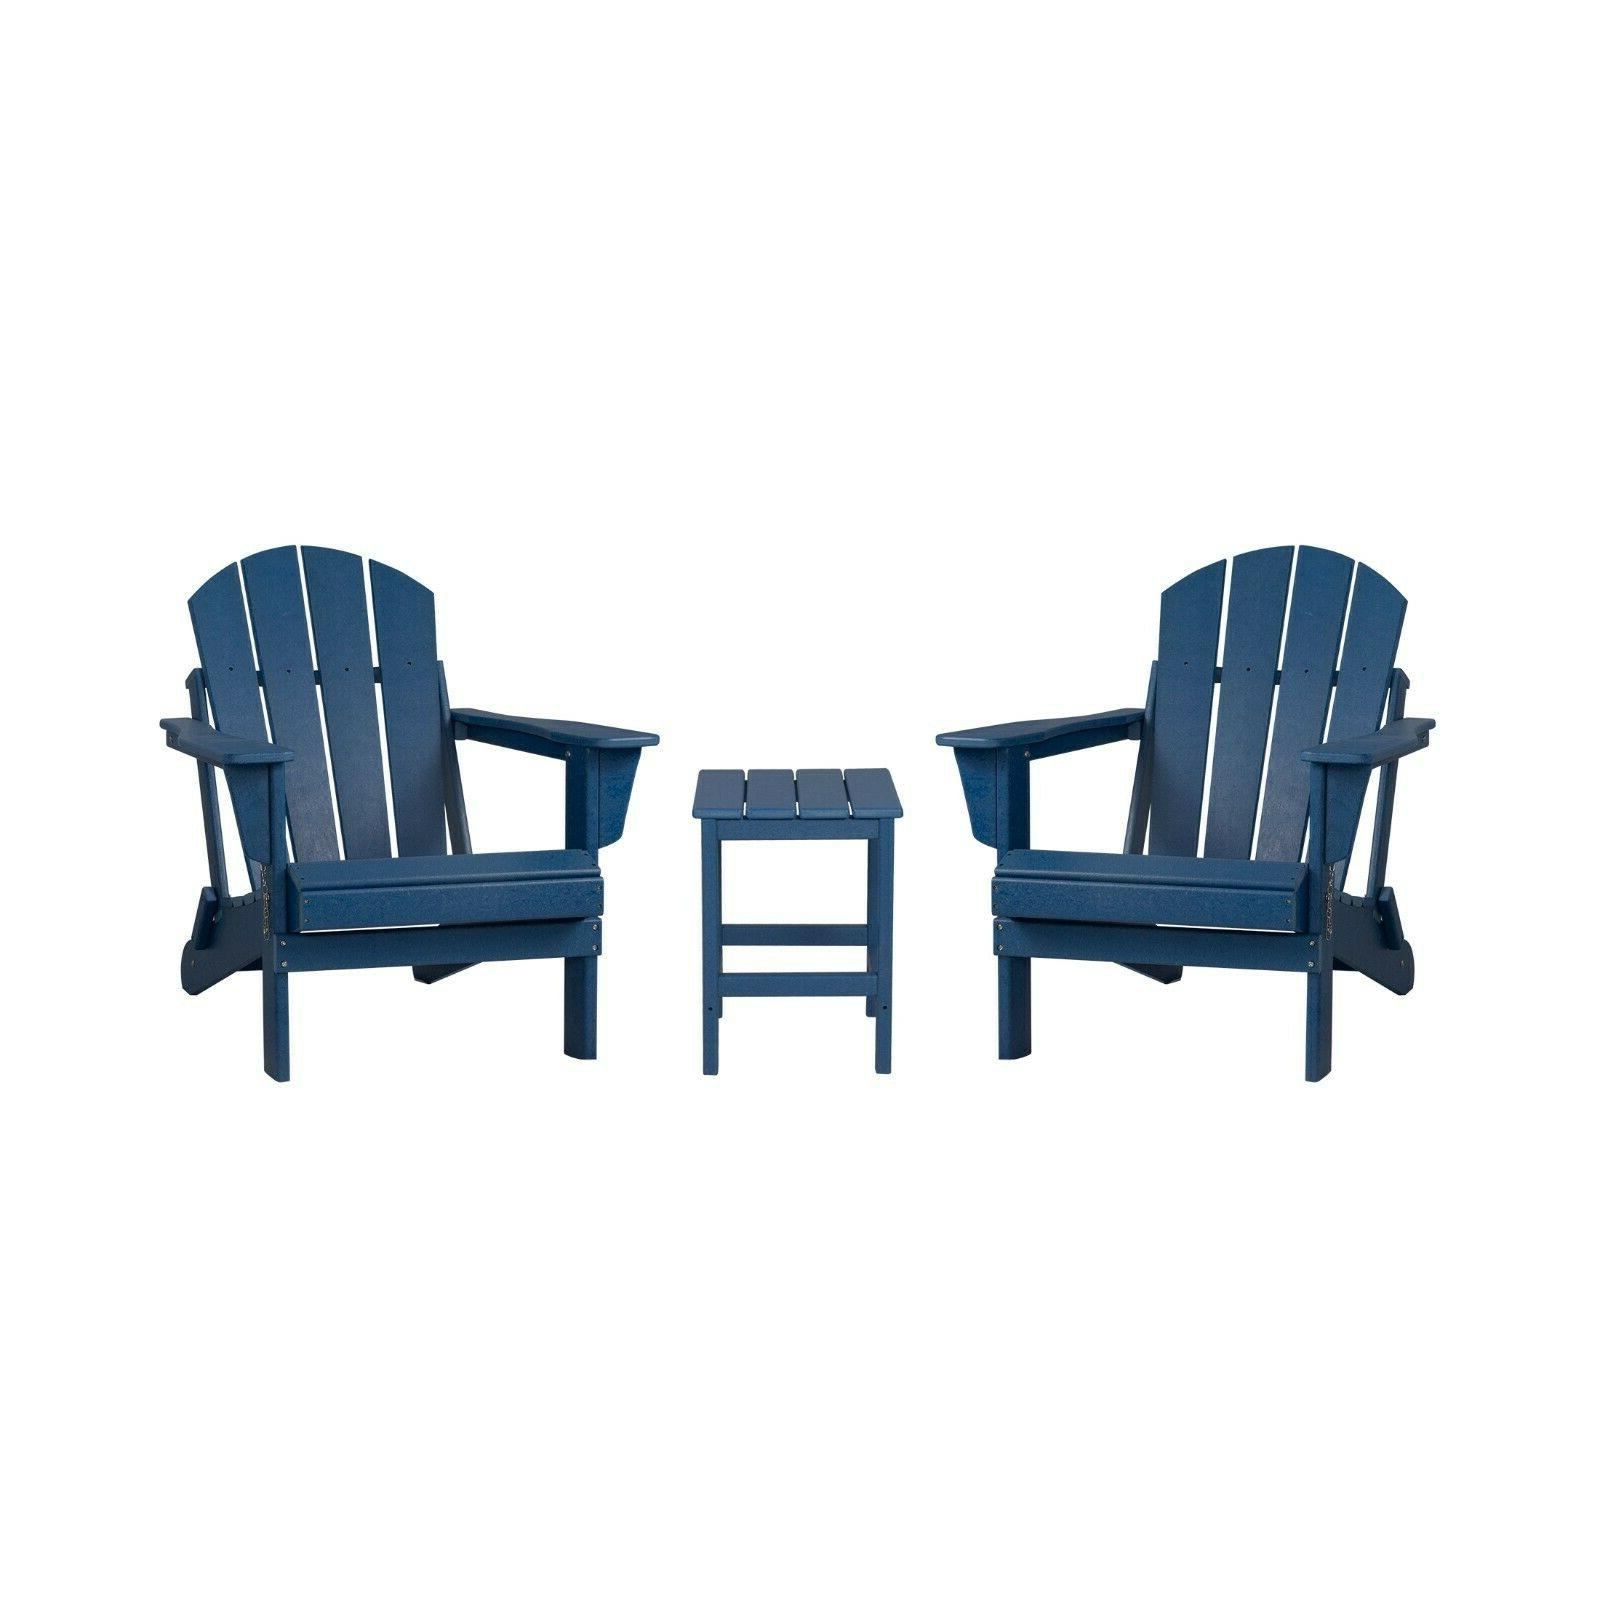 WestinTrends 3PC Set Outdoor Chairs w/ Table